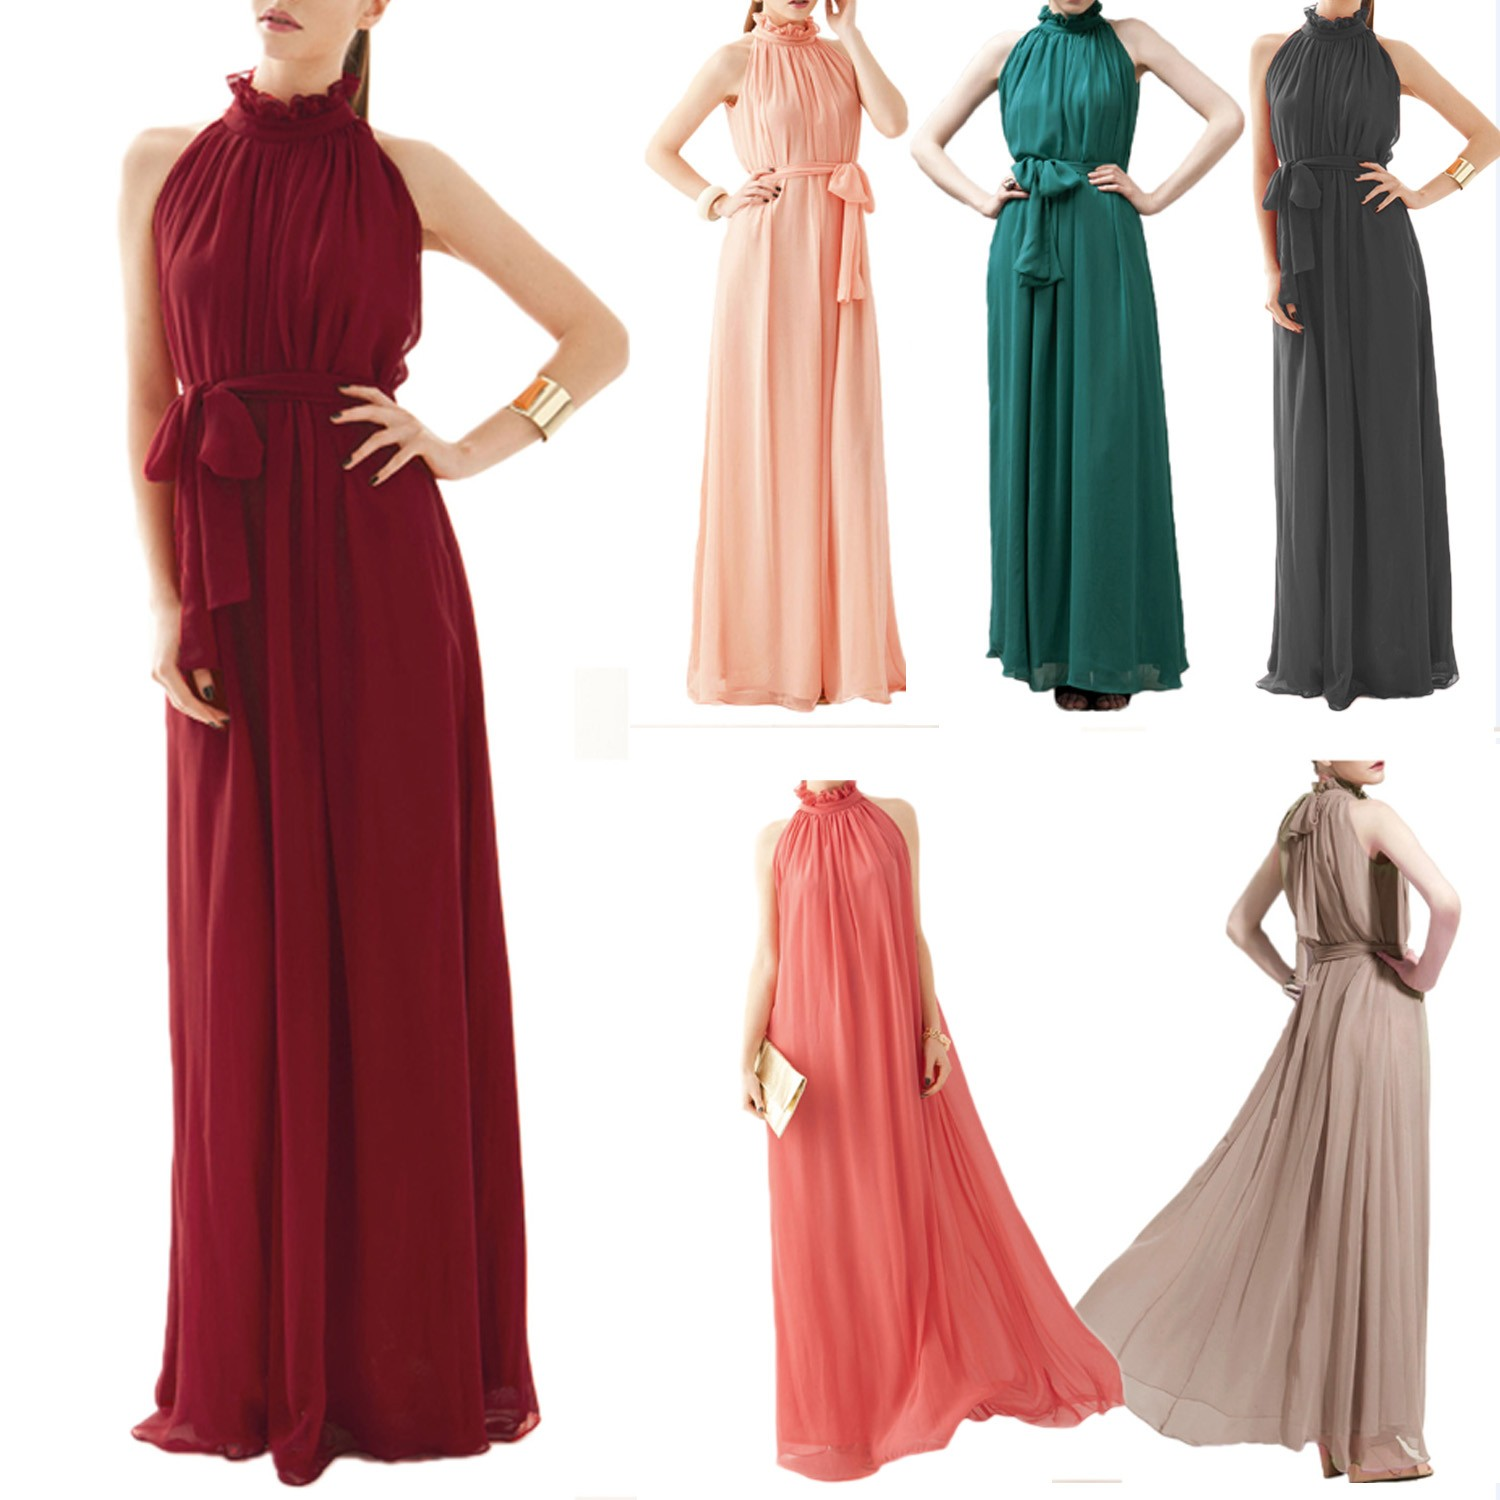 Chiffon Maxi Long Evening Dress - 0427#